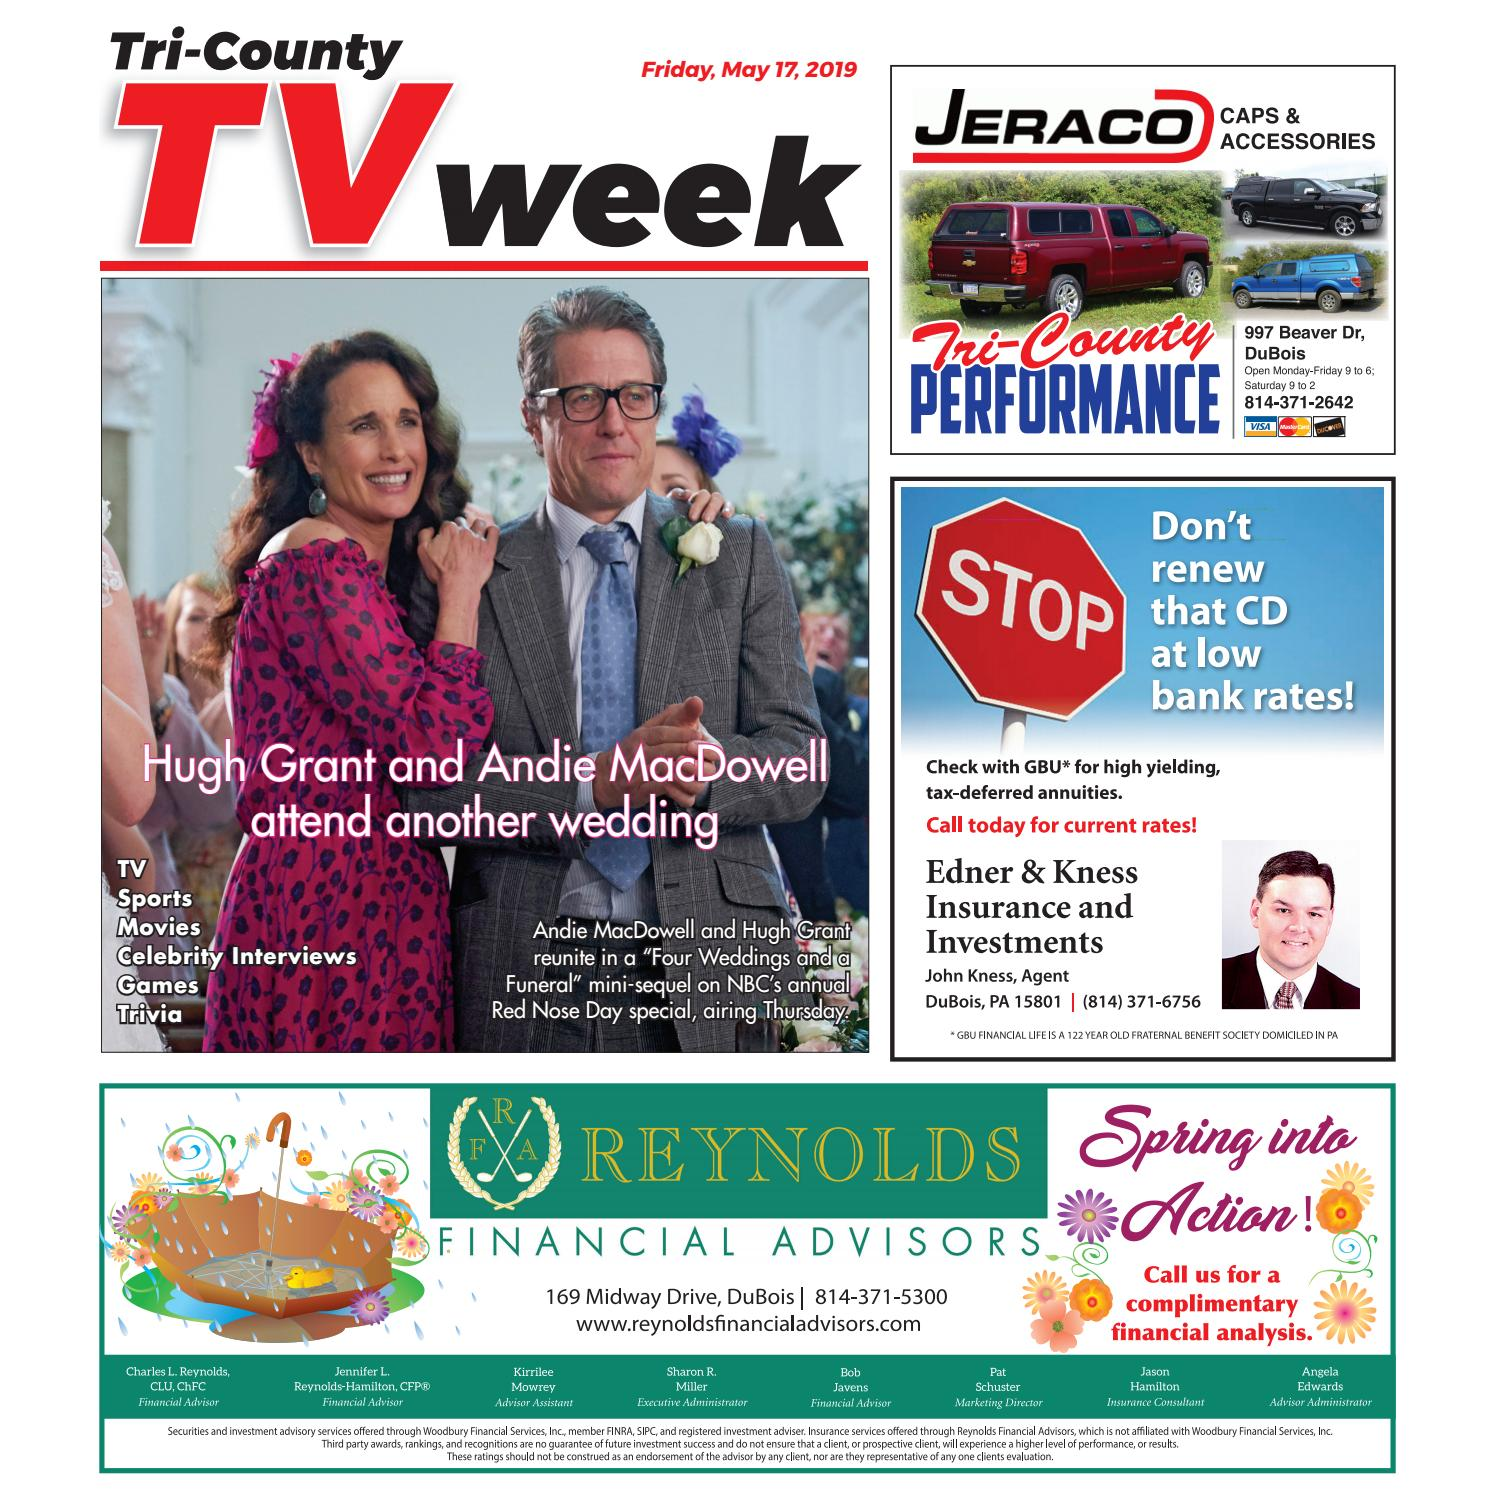 f486e83a4 TV Week, Friday, May 17, 2019 by Tri-County TV Week - issuu